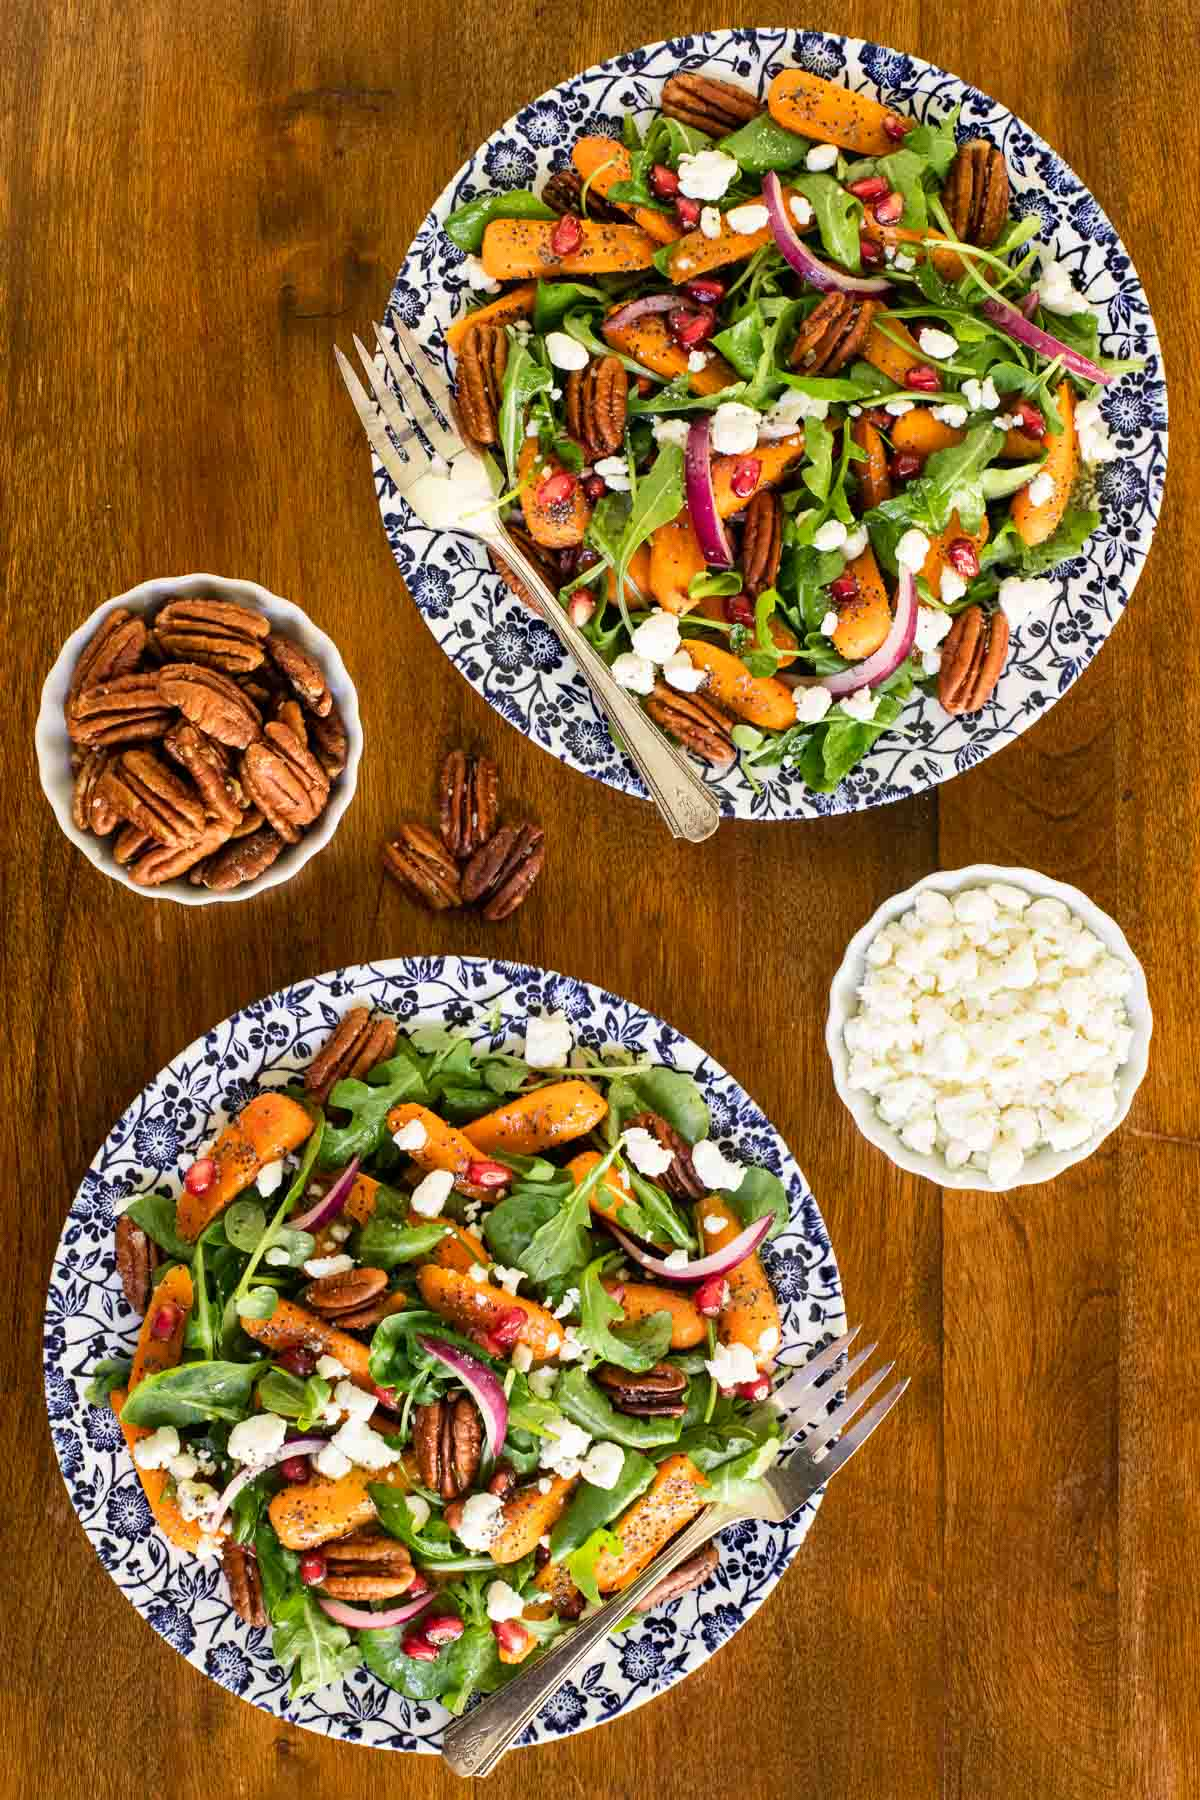 Overhead vertical photo of two individual servings of Roasted Carrot Salad with Cider Poppy Seed Dressing on blue and white patterned plates.